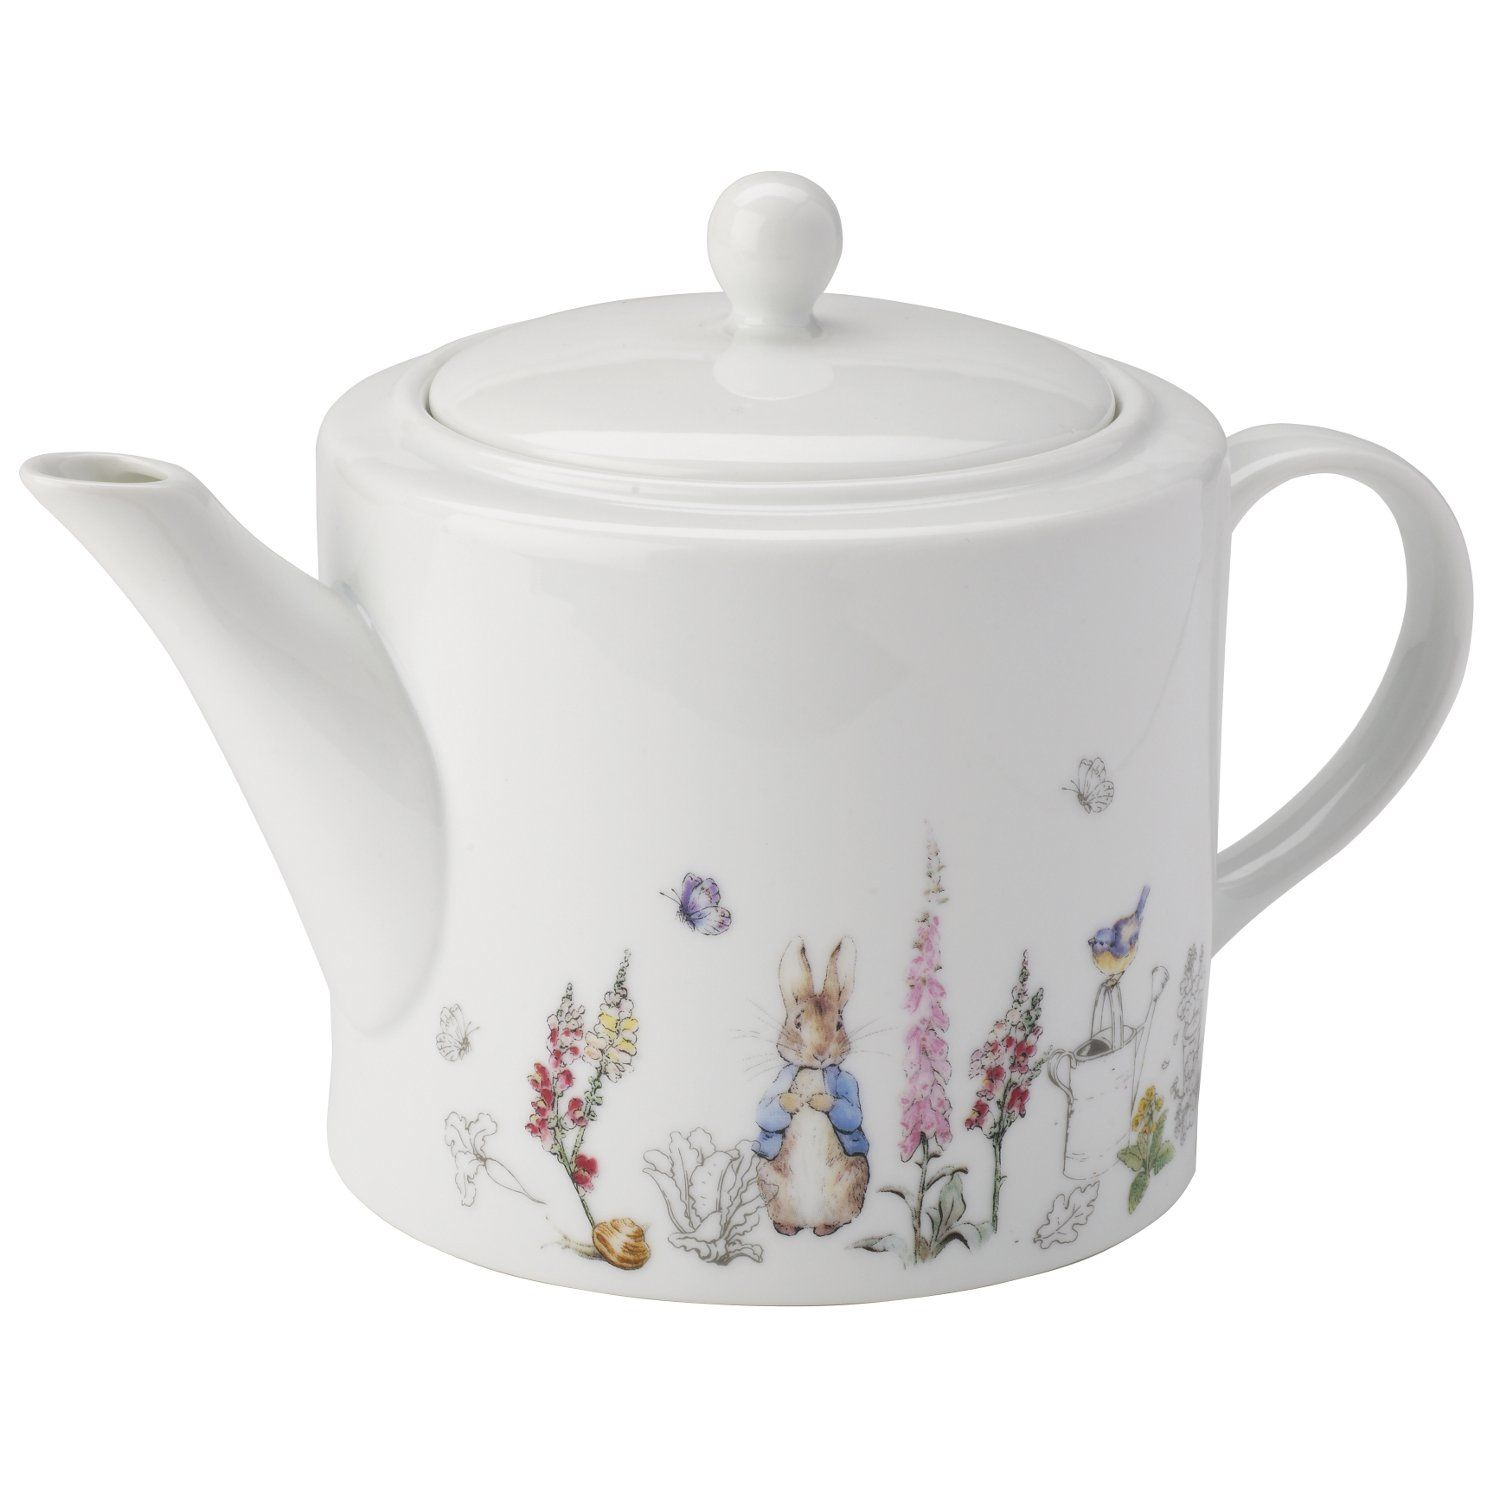 Peter Rabbit Peter Rabbit Classic Tea Pot